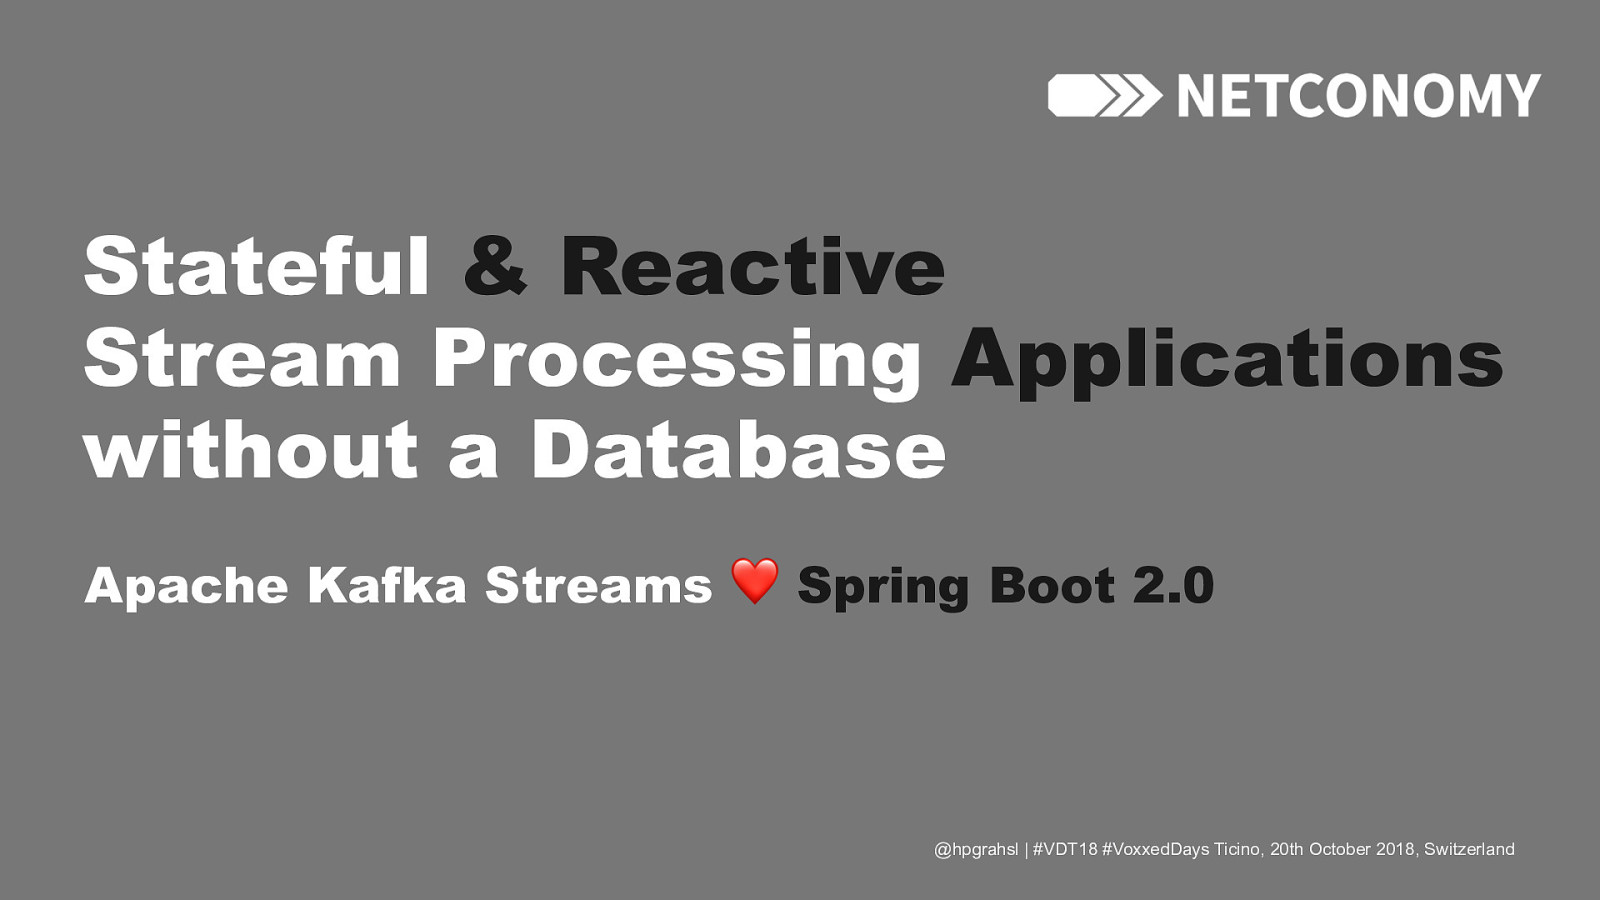 Stateful & Reactive Stream Processing Applications Without a Database